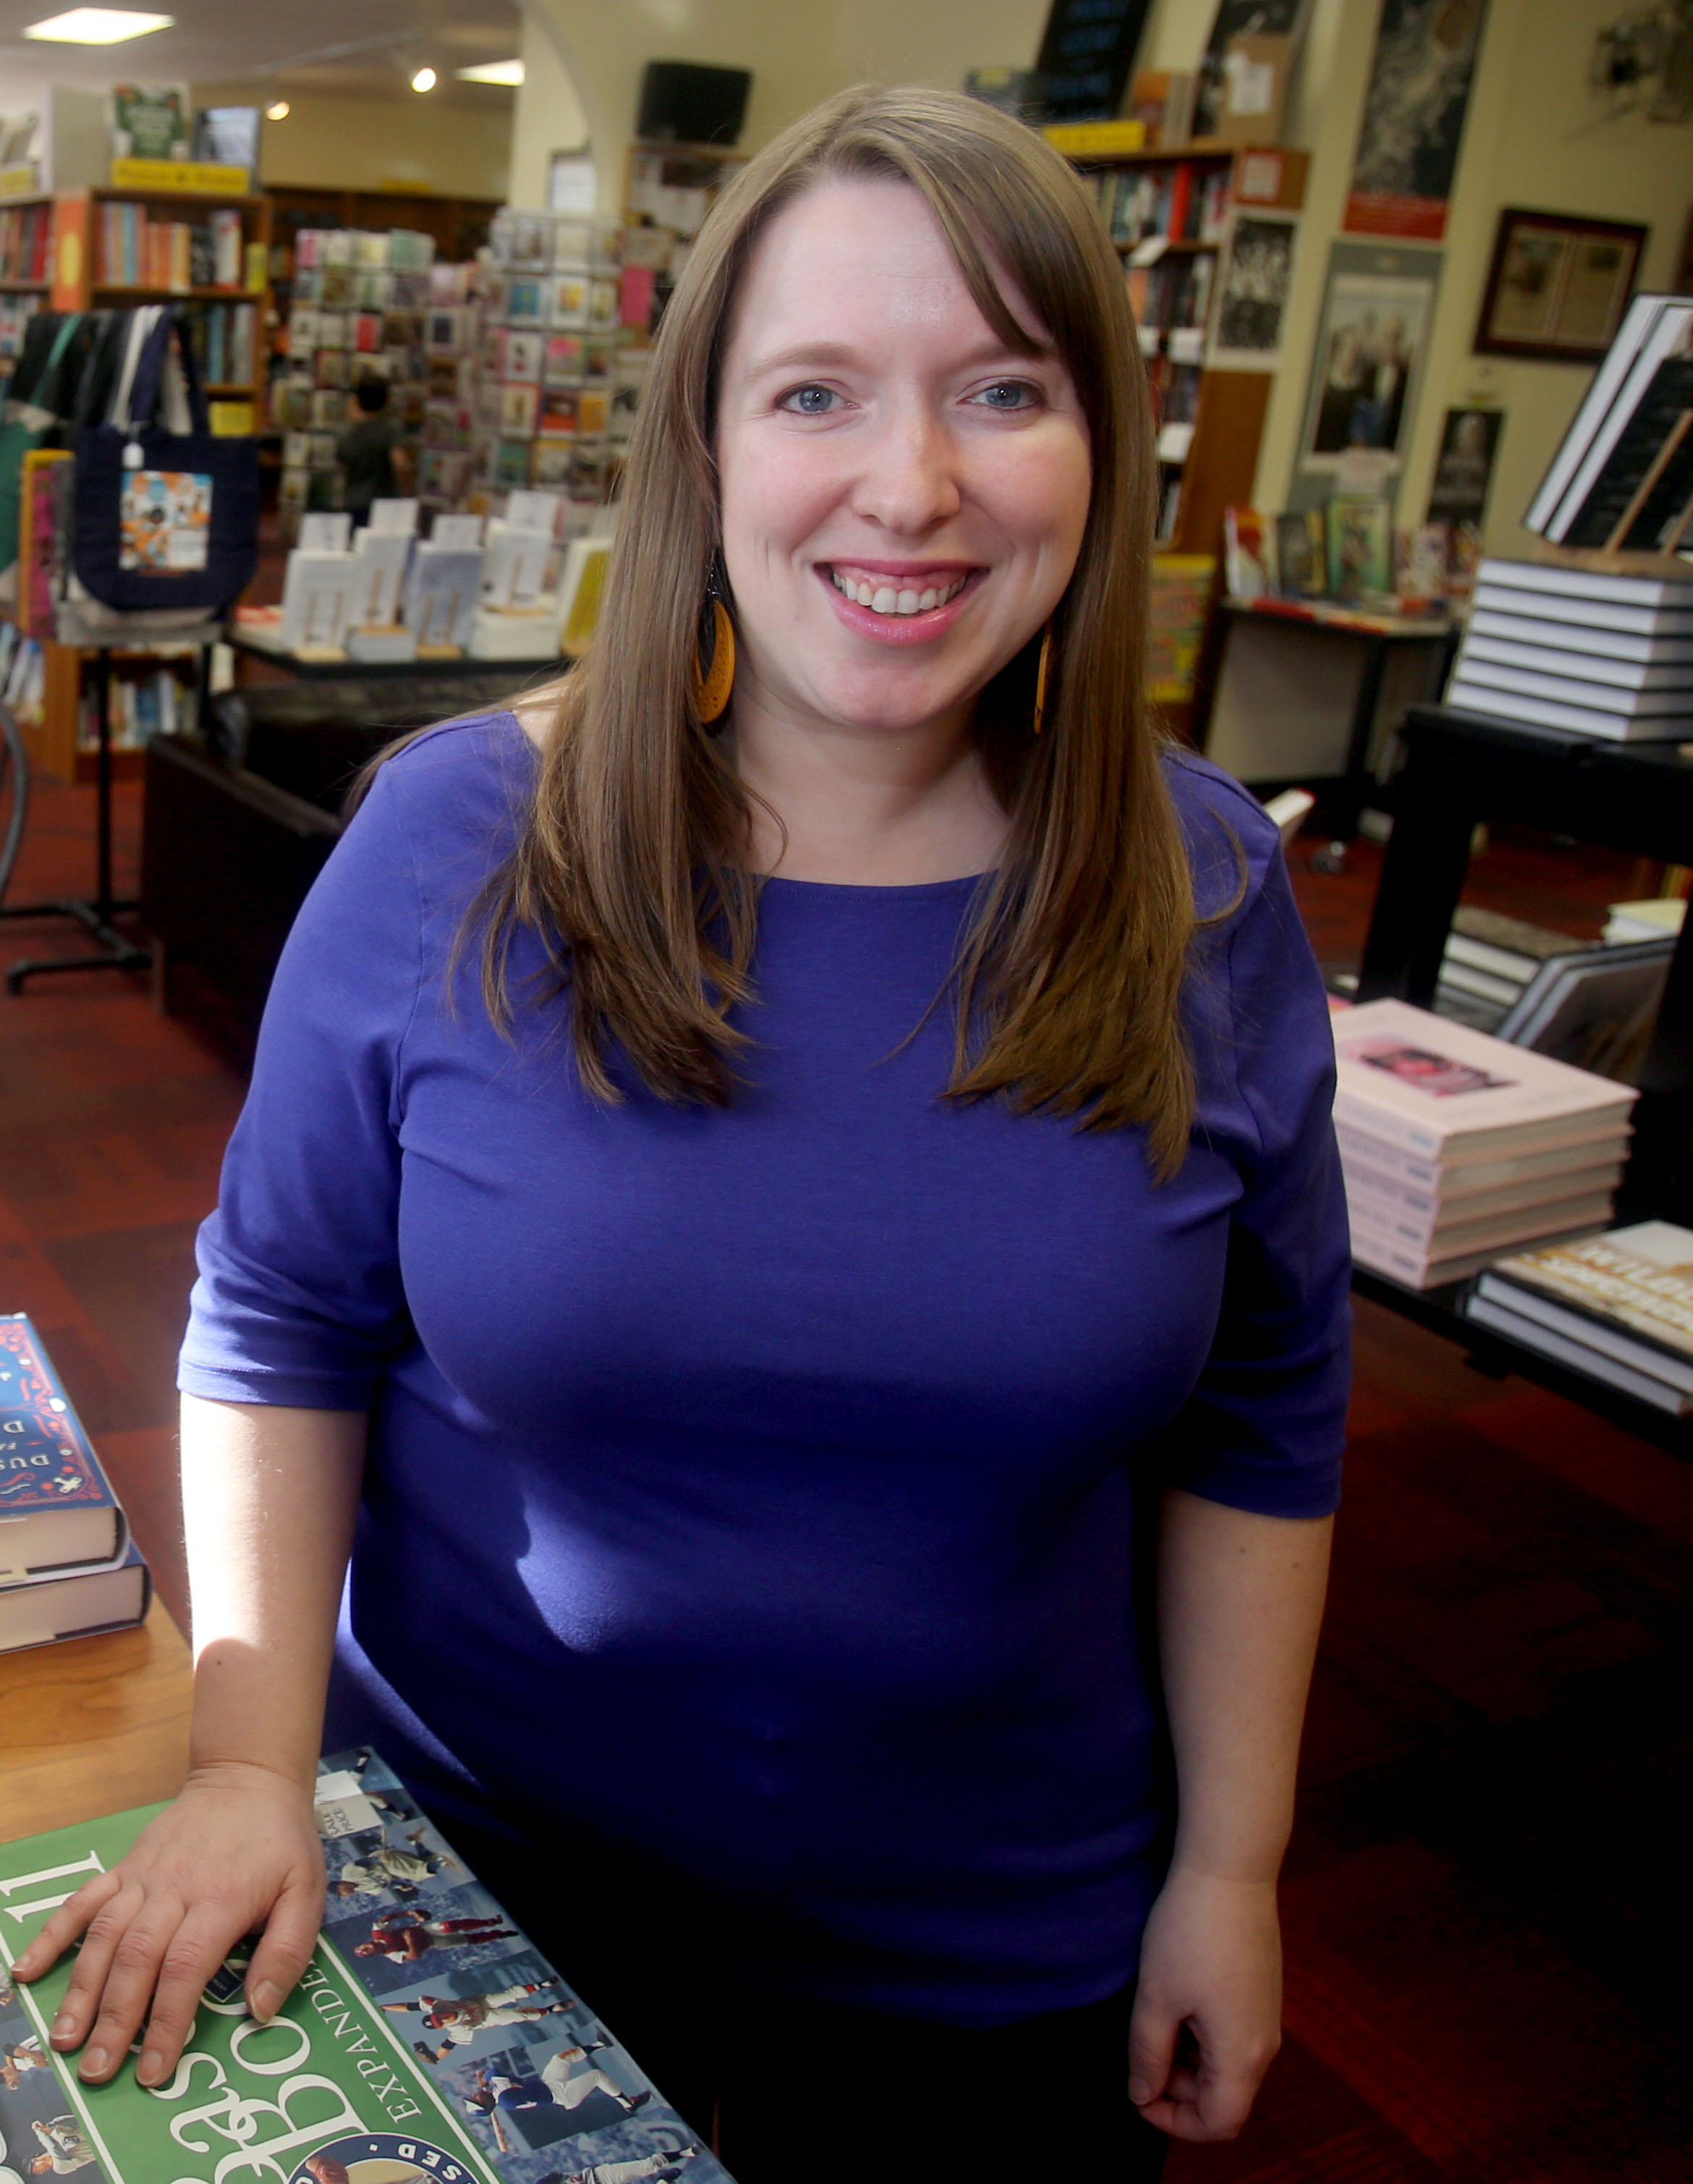 Q&A: SUZANNA HERMANS, CO-OWNER OF OBLONG BOOKS AND MUSIC IN MILLERTON AND RHINEBECK, NEW YORK